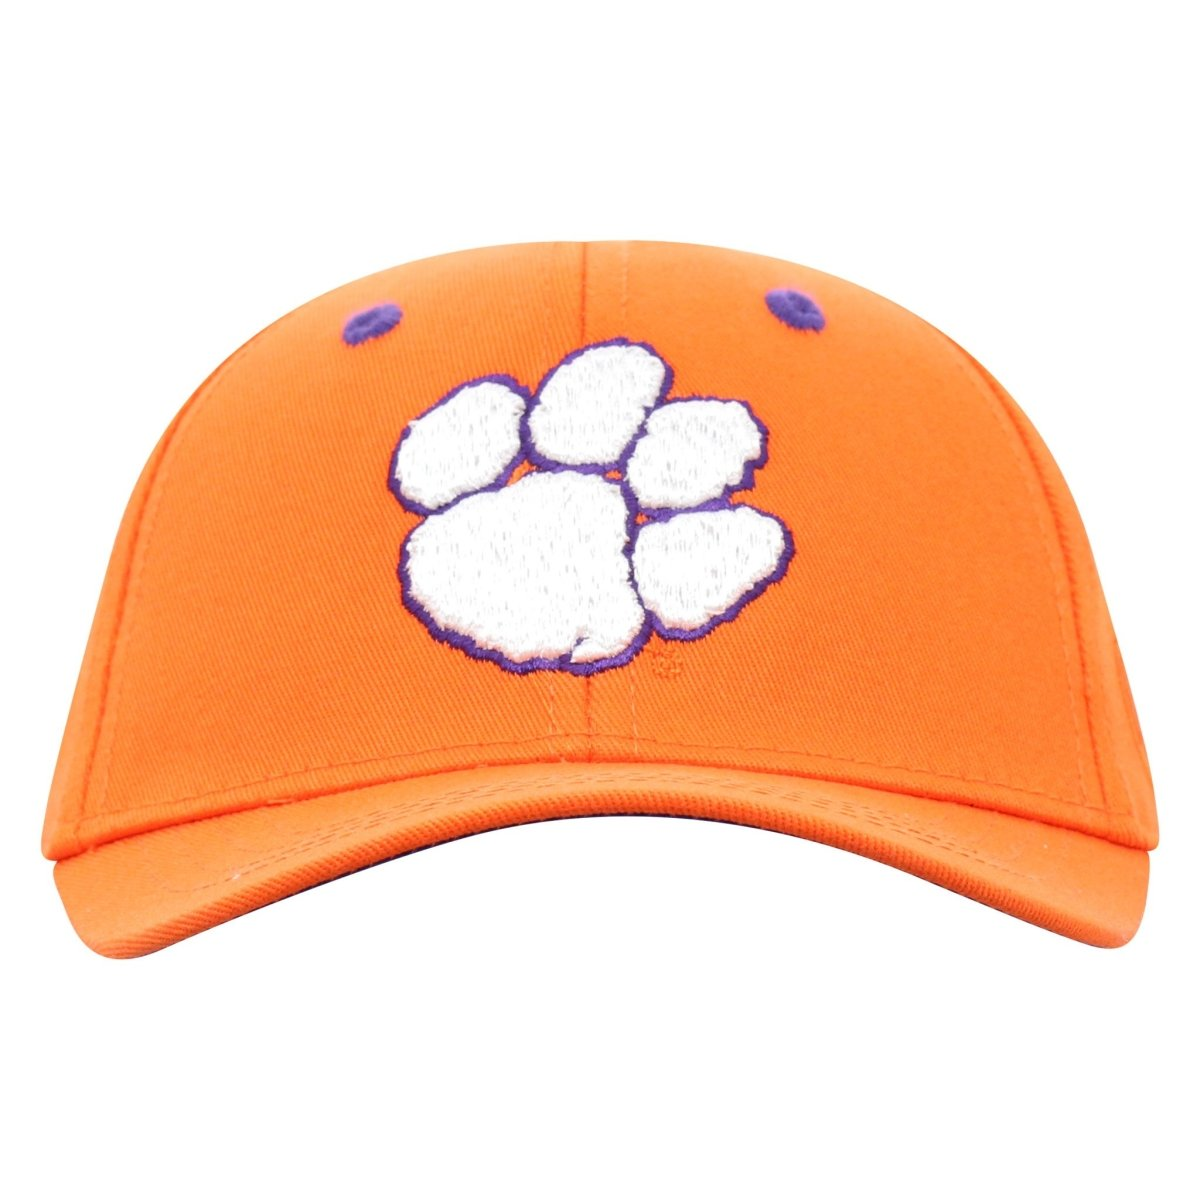 Clemson Tigers Top of the World Lil' Tiger Paw Print Fitted Infant Cap - Mr. Knickerbocker